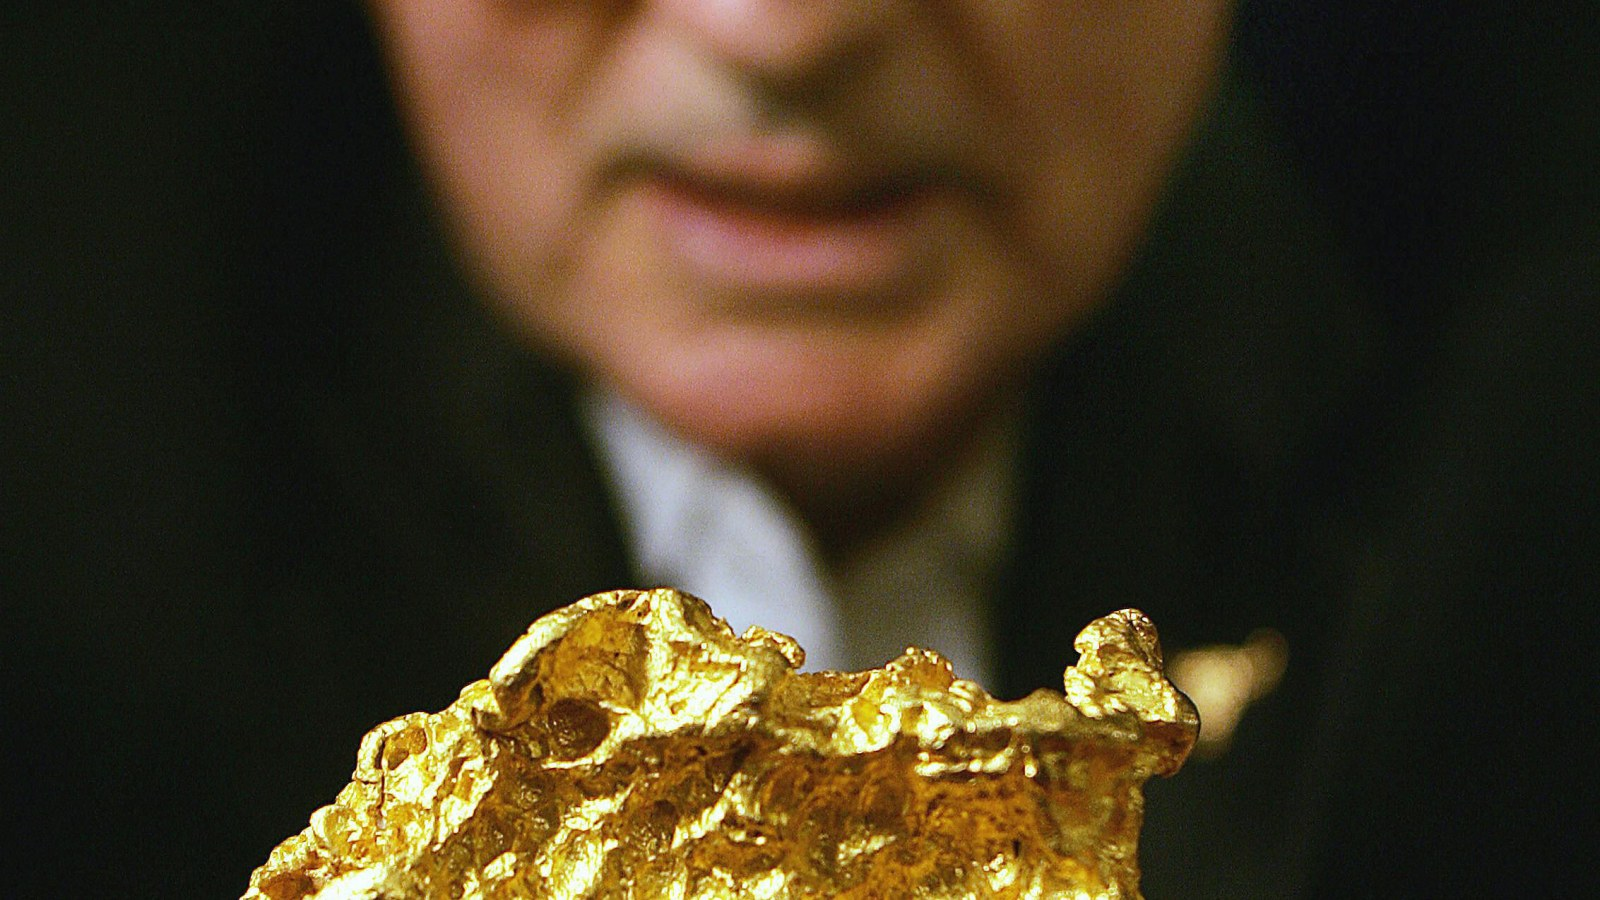 Retired Prospector Unearths 4 4 Pound Gold Nugget: 'He Was